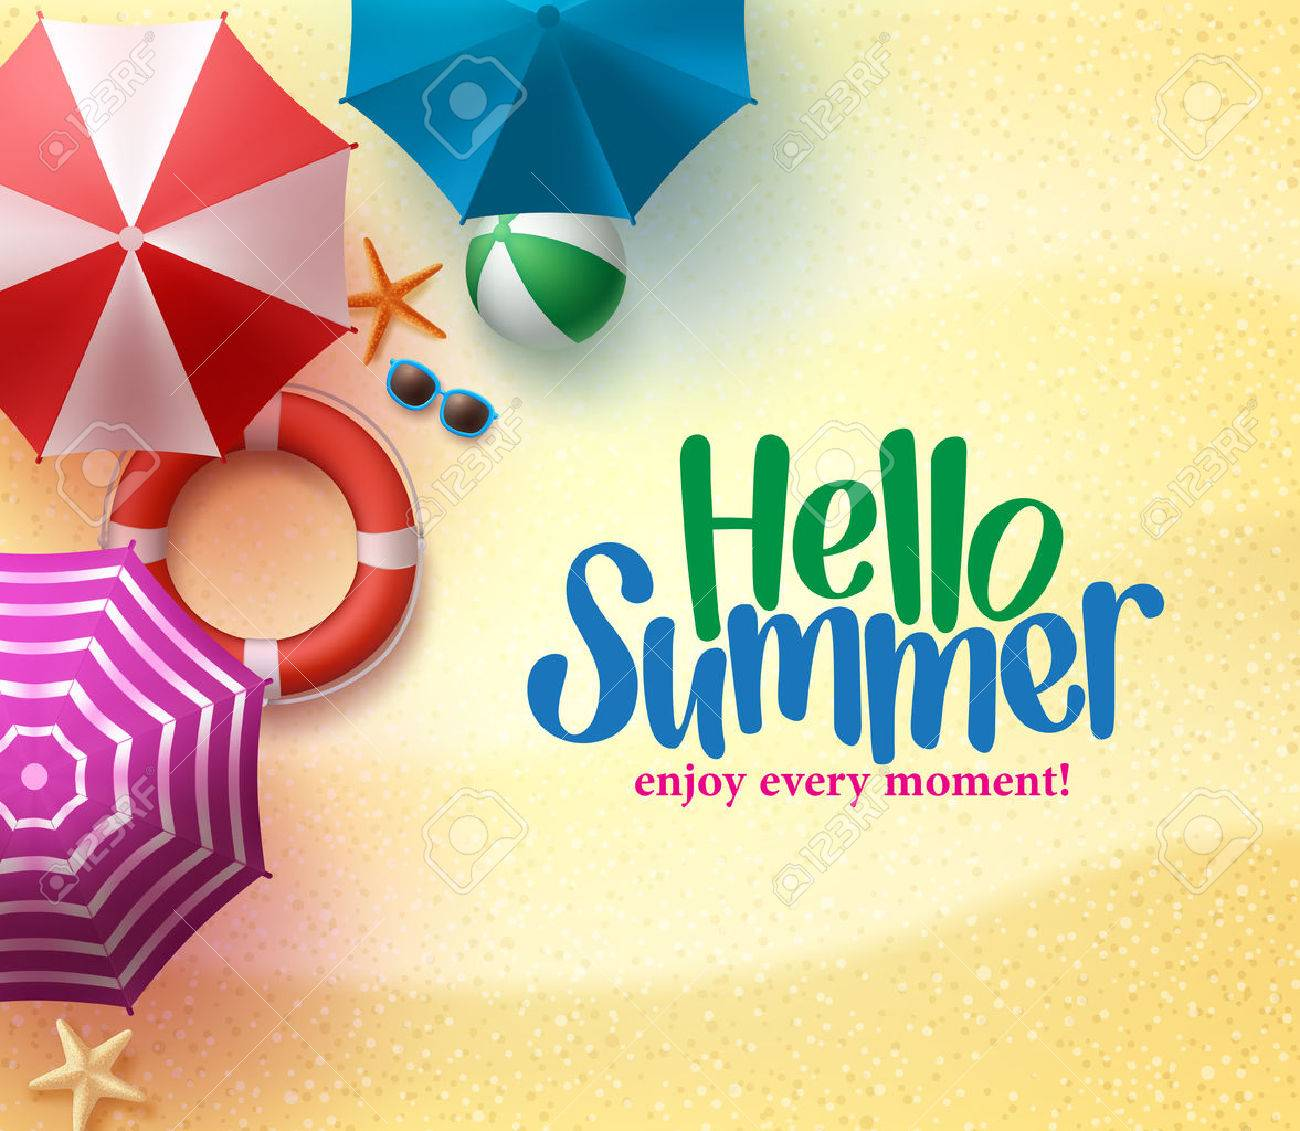 Hello Summer Background with Colorful Umbrella, Beach Ball, and Lifebuoy in the Sand Sea Shore for Summer Season. - 53161609